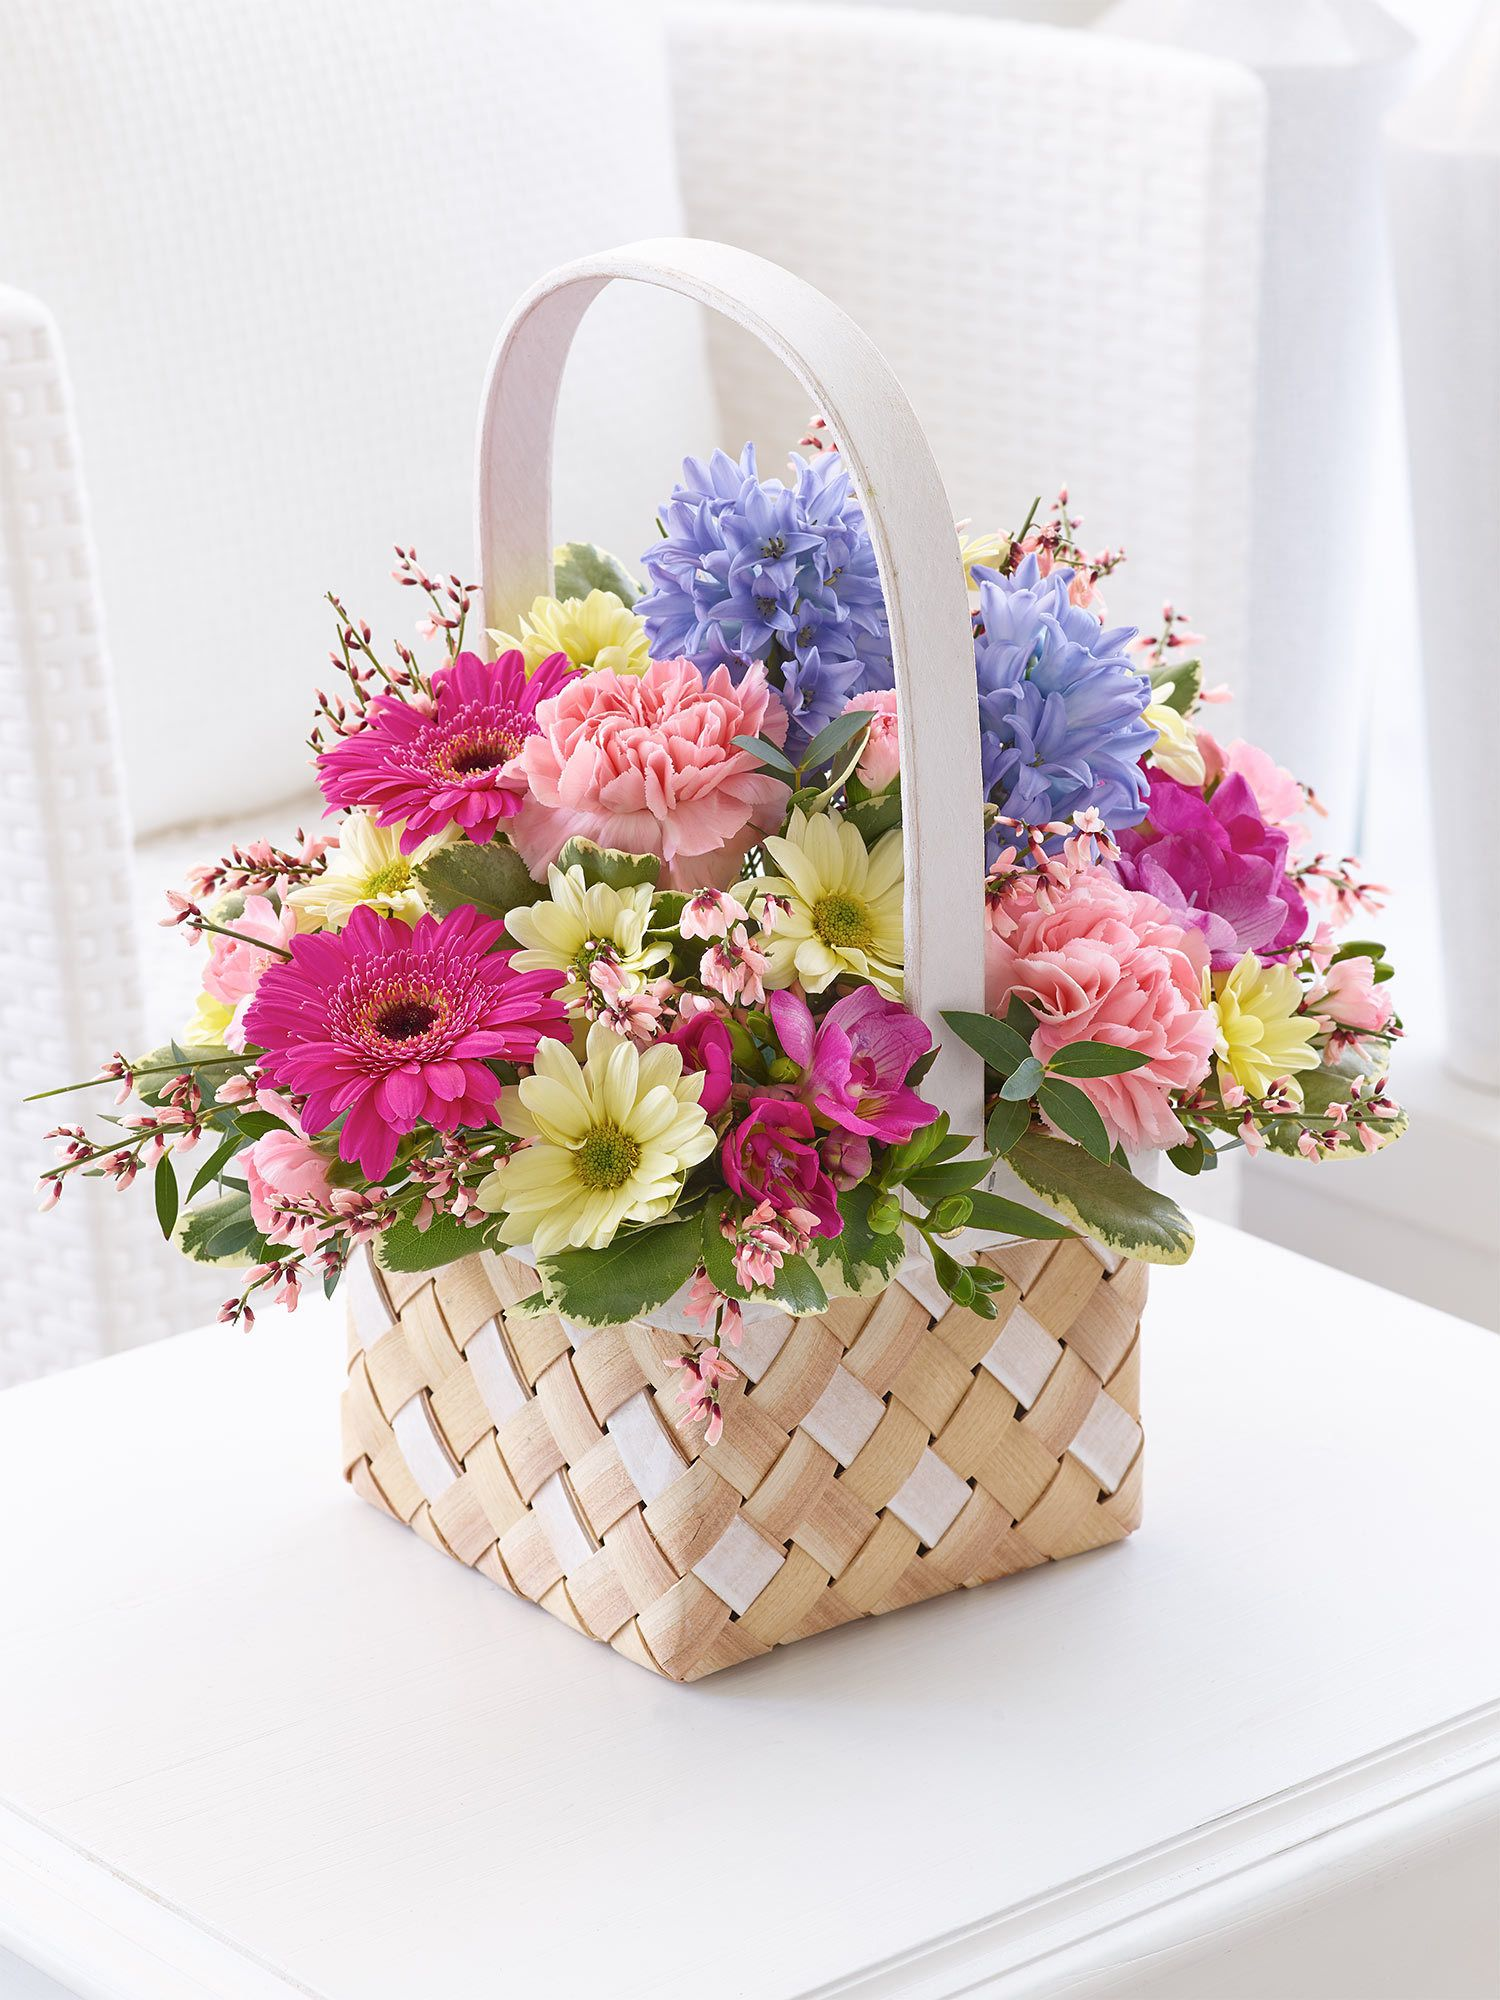 Give Their Home An Instant Lift With This Brightly Coloured Basket